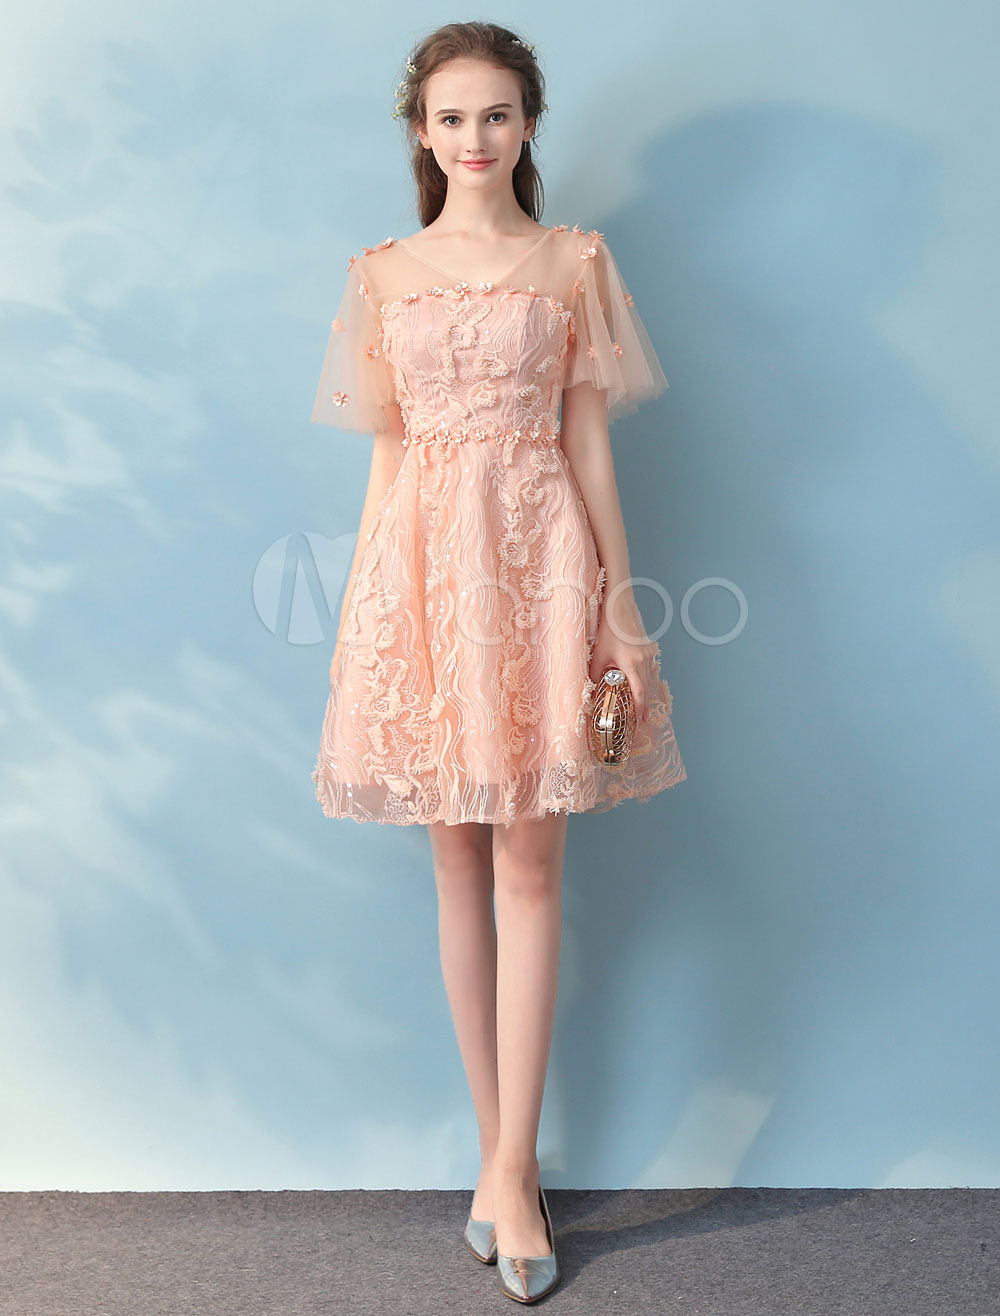 Buy Peach Homecoming Dress Lace Short Prom Dresses V Neck Butterfly Sleeve Backless Flower Deco A Line Knee Length Cocktail Dress for $114.39 in Milanoo store